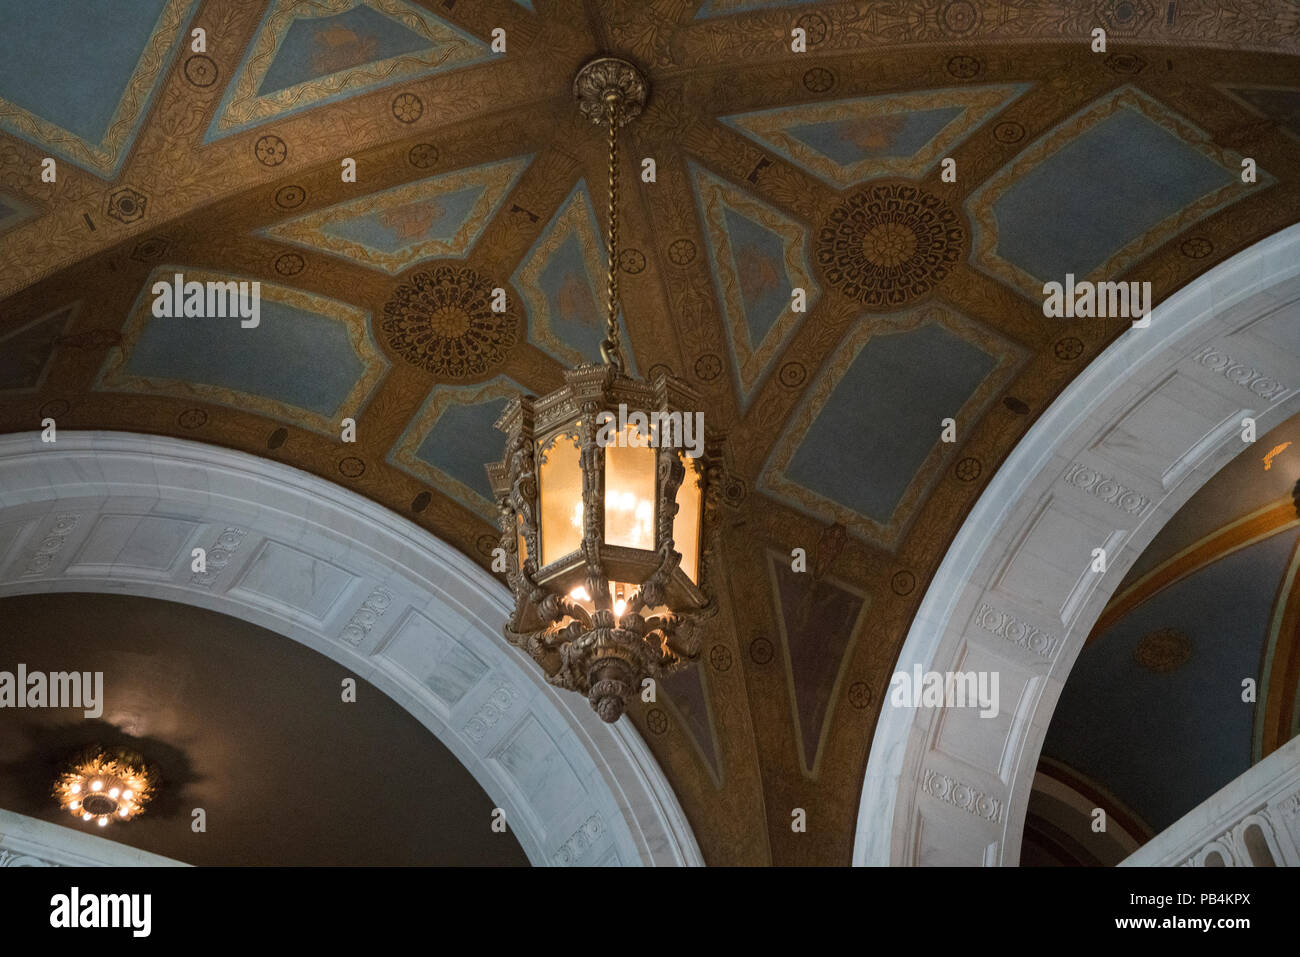 A ceiling in the Alexander Hamilton U.S. Custom House, now the National Museum of the American Indian in Lower Manhattan. The building opened in 1907. - Stock Image